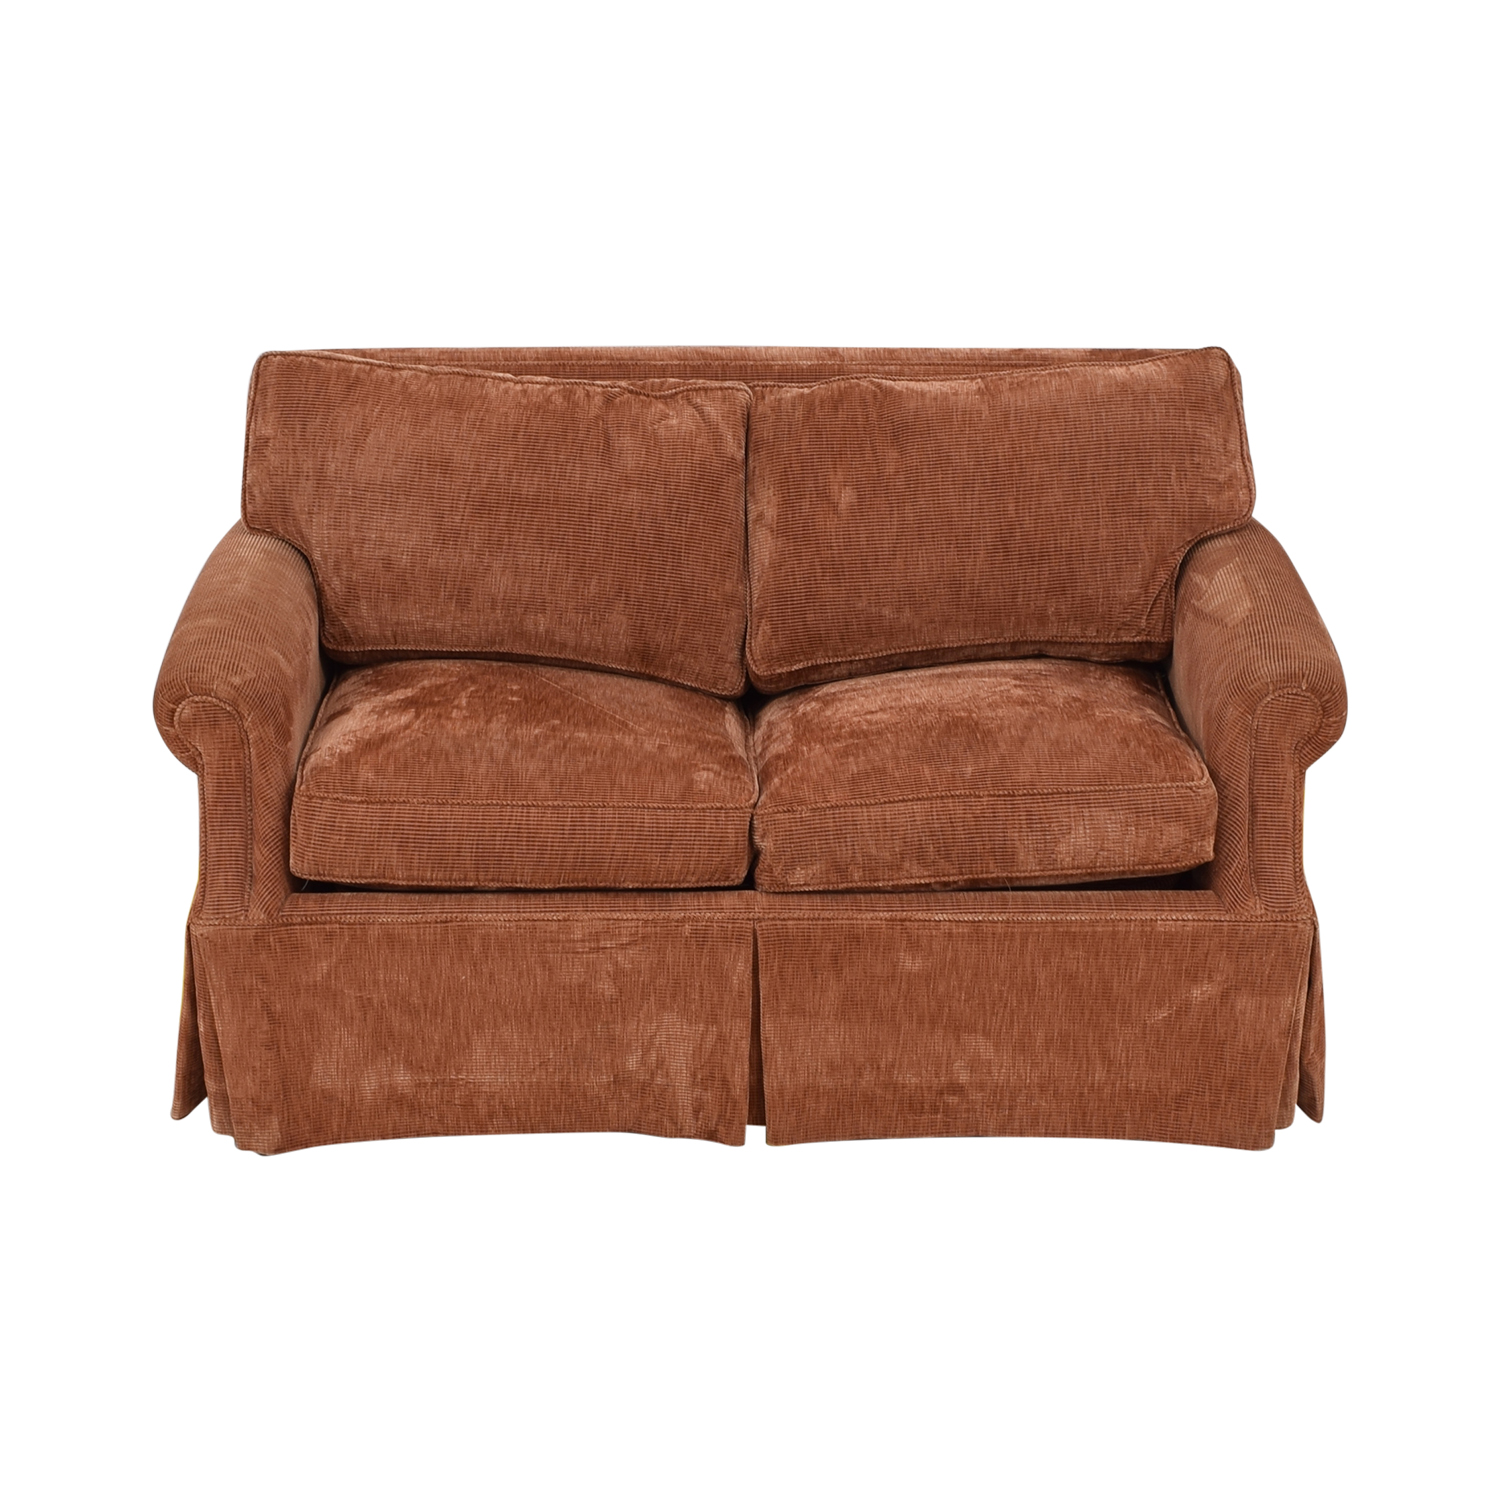 Carlyle Carlyle Round Arm Lawson Sofa Bed coupon